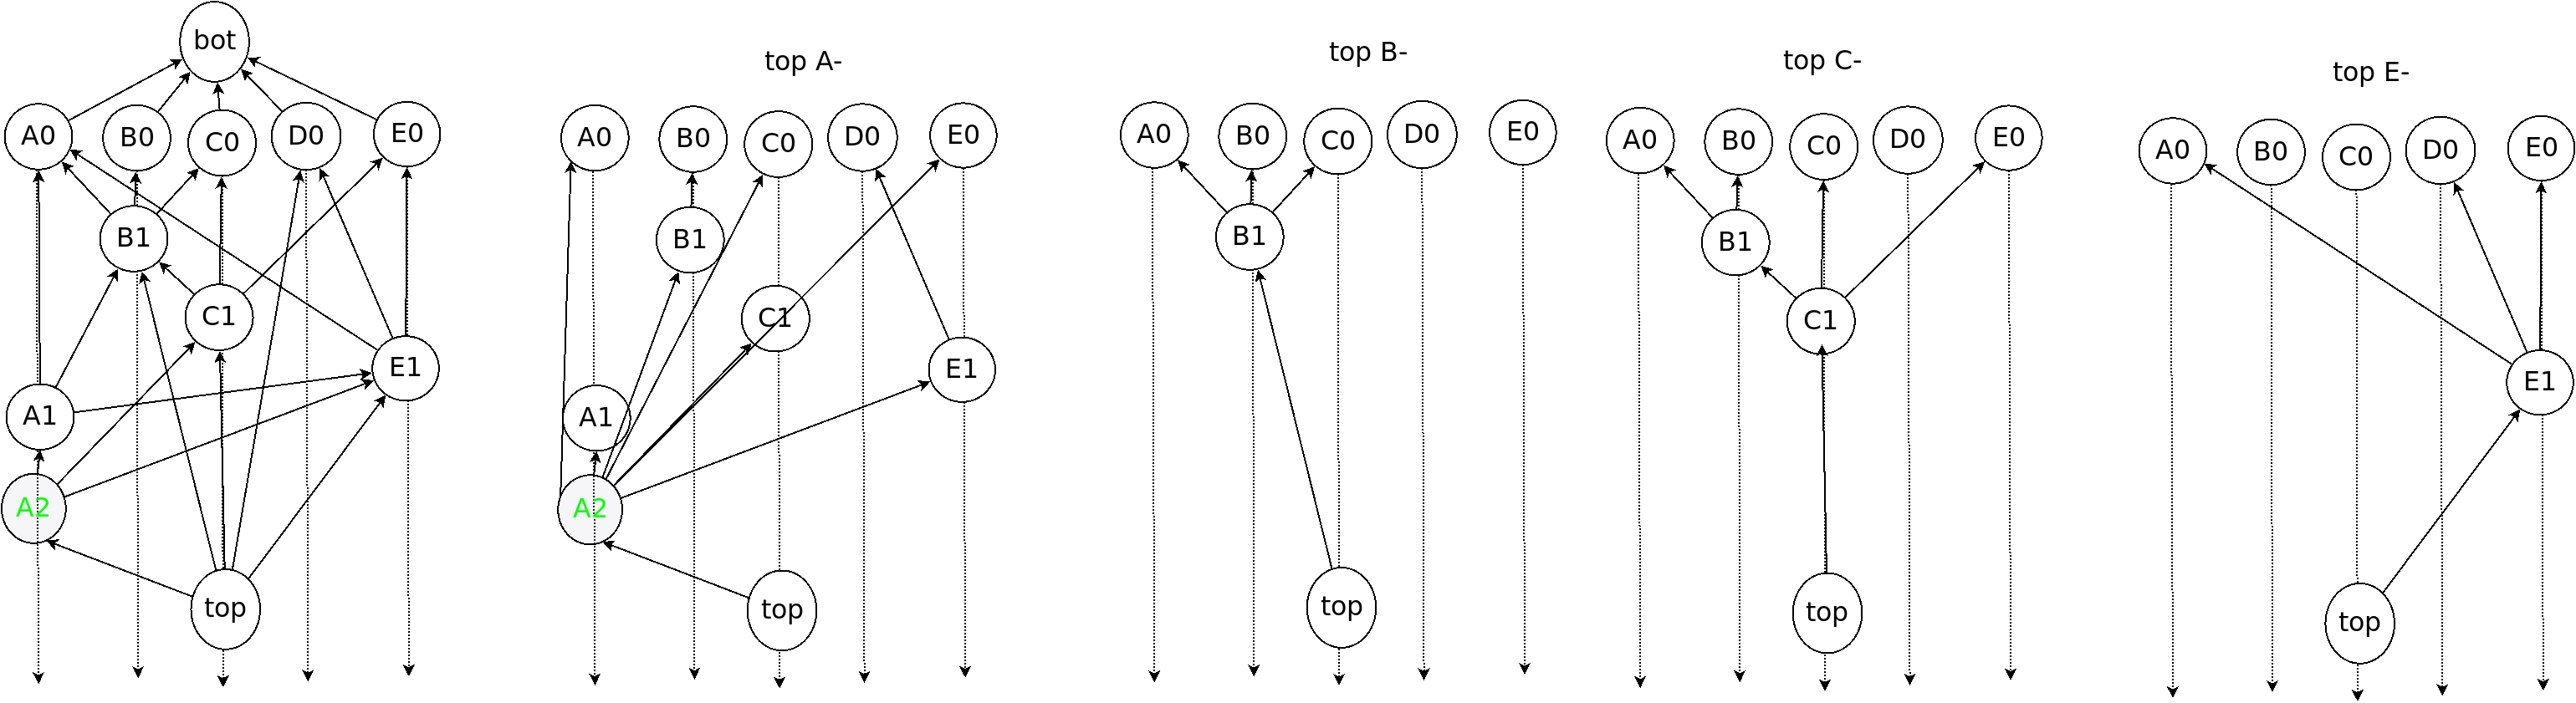 Examples of OPERA chain and dominator tree